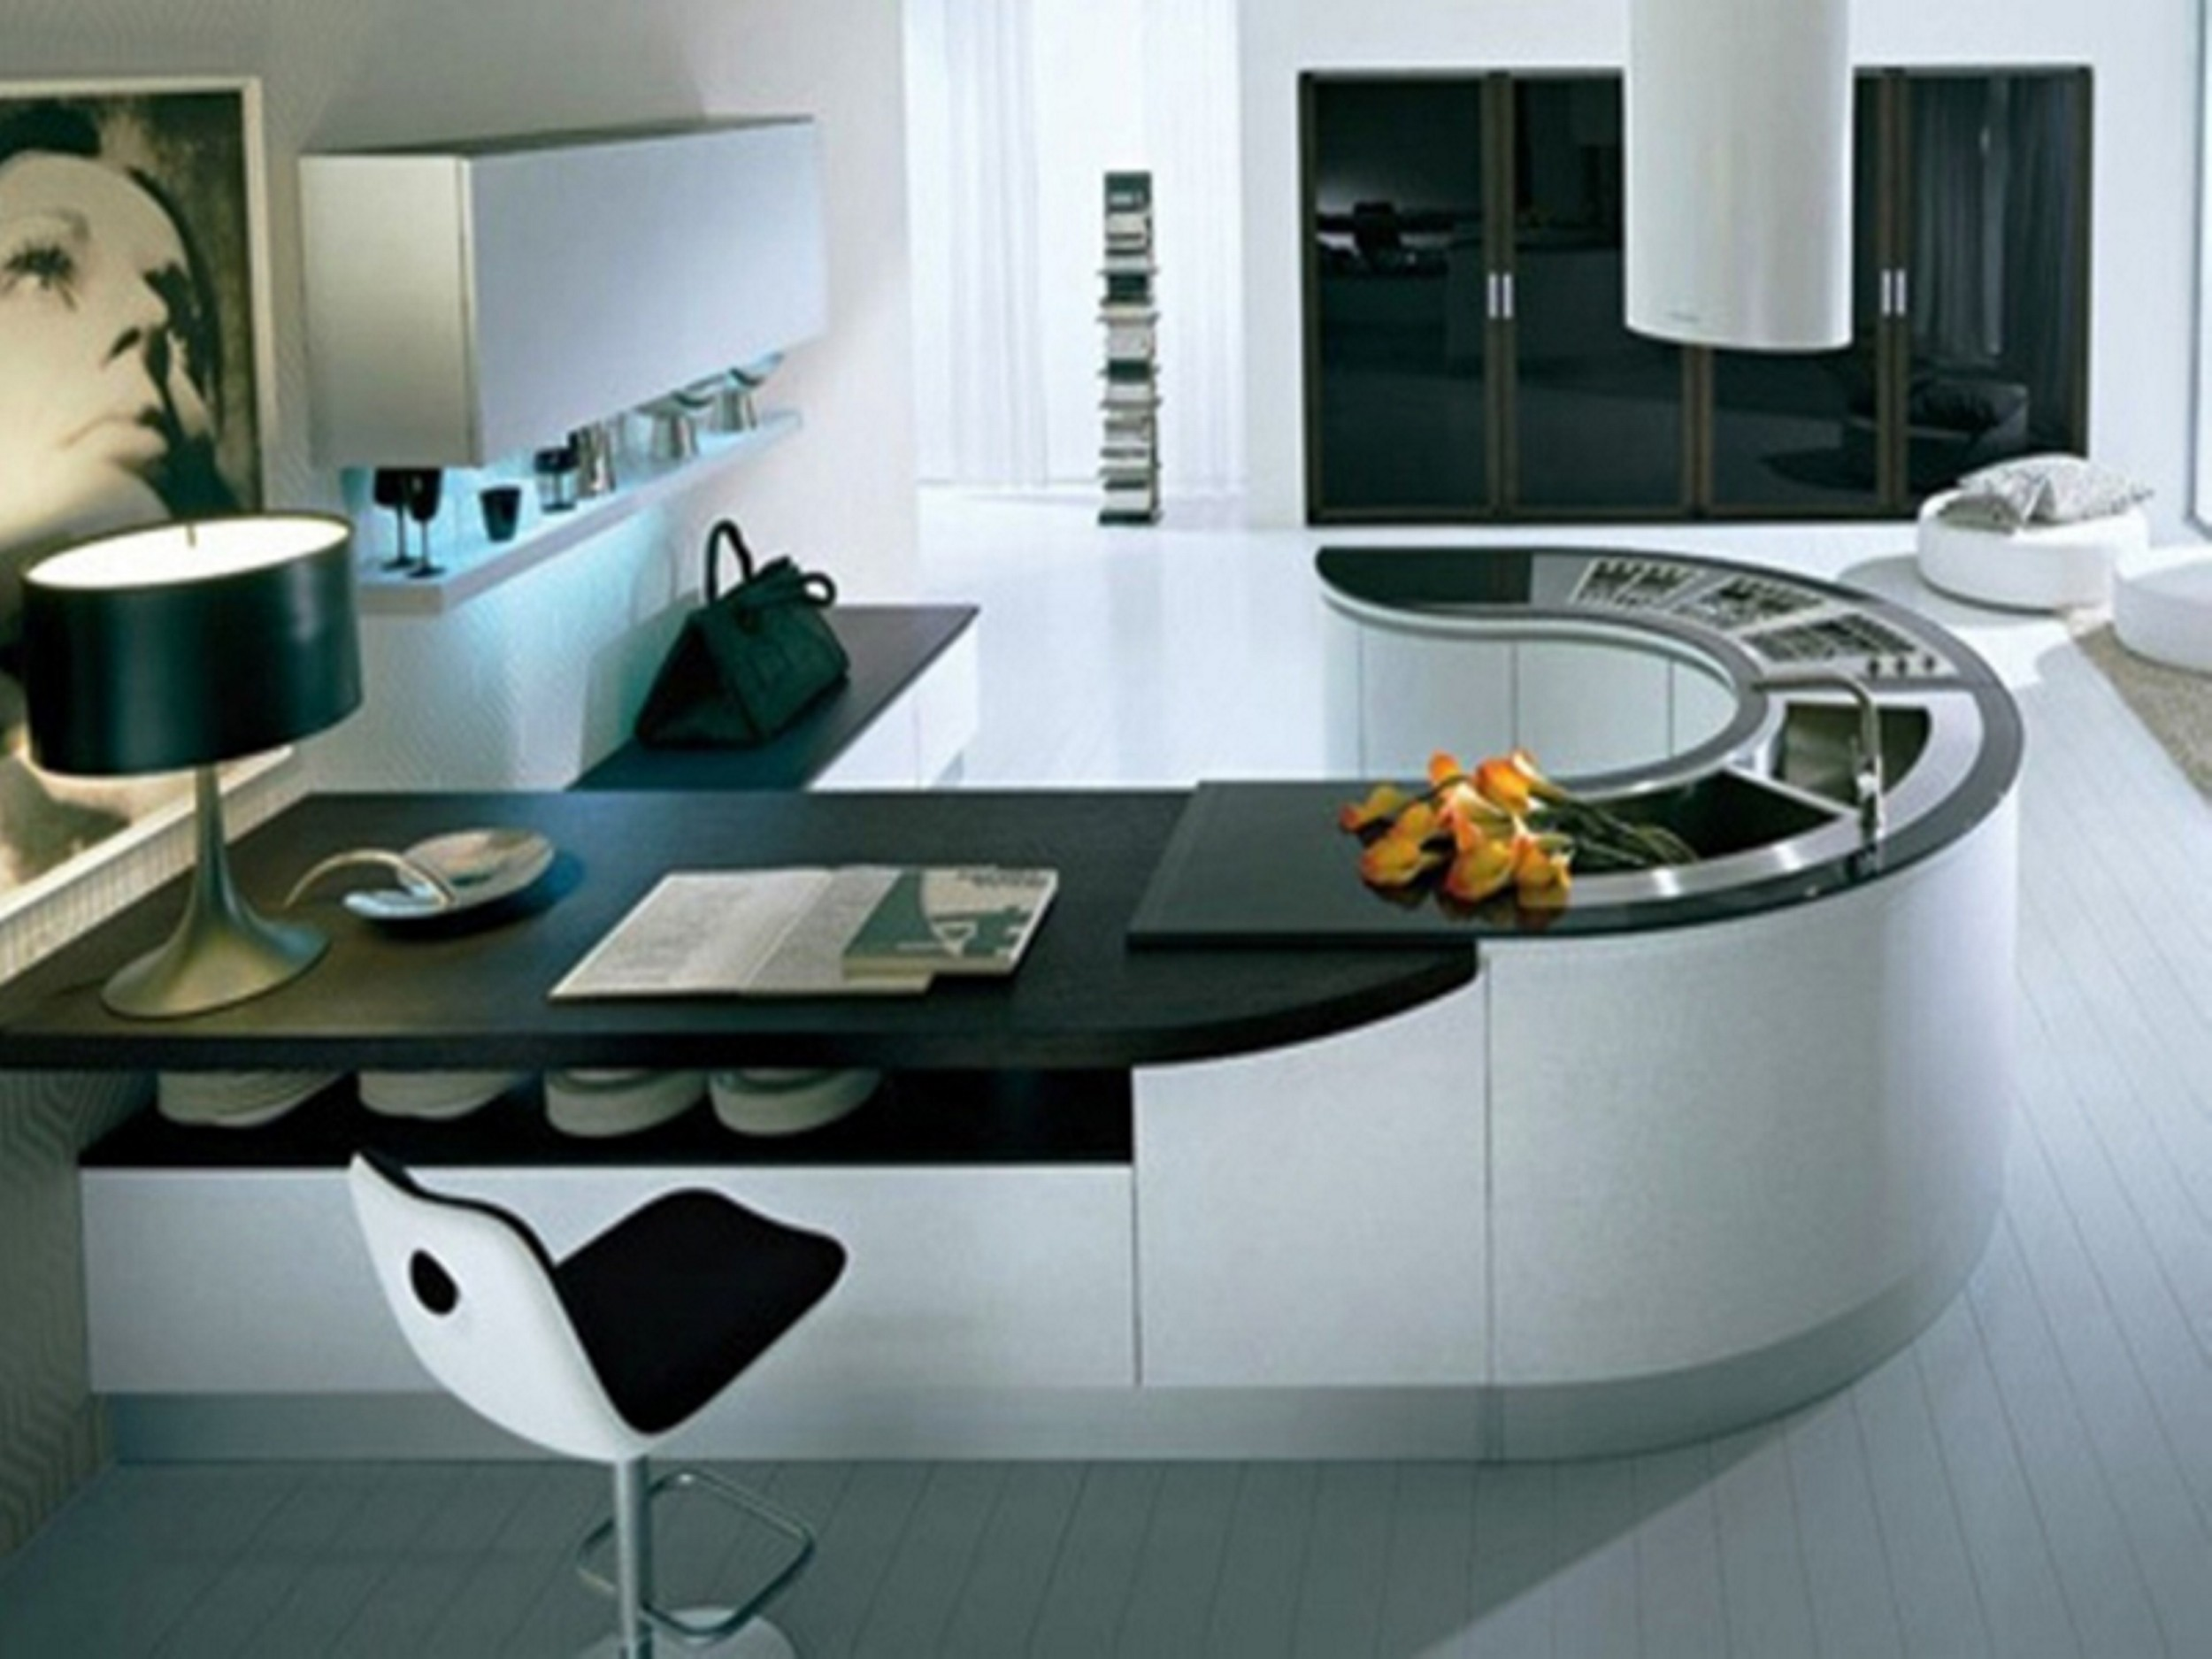 Delicieux Indian Modular Kitchen Designs Design Of Modular Kitchen Indian Kitchen  Design Modular Kitchen Images